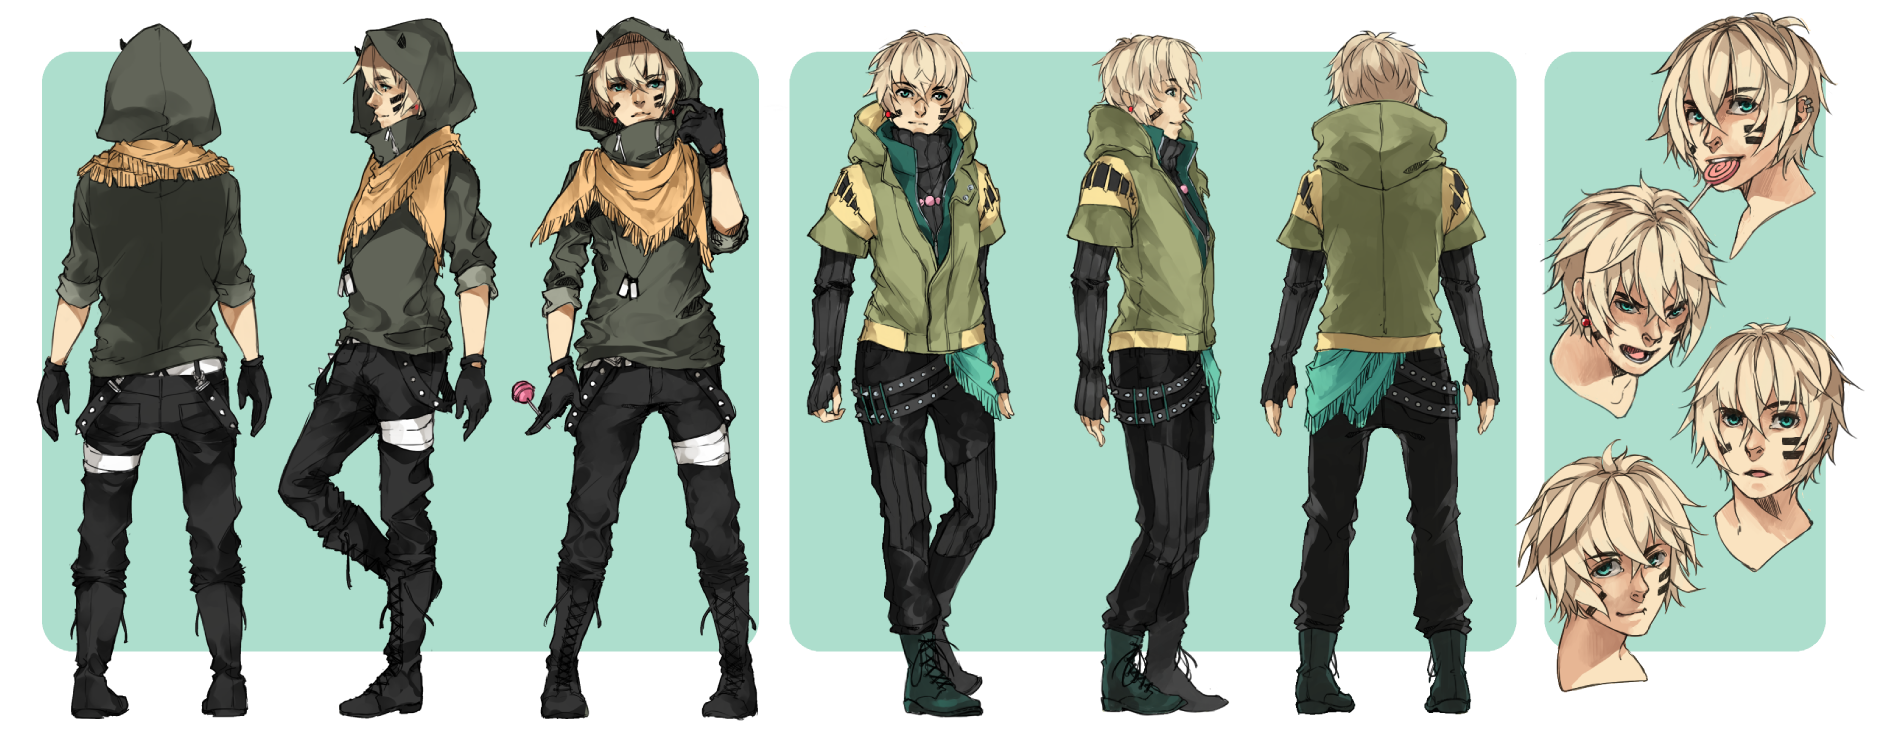 Anime Character Design Base : Character sheet keil by crys art on deviantart